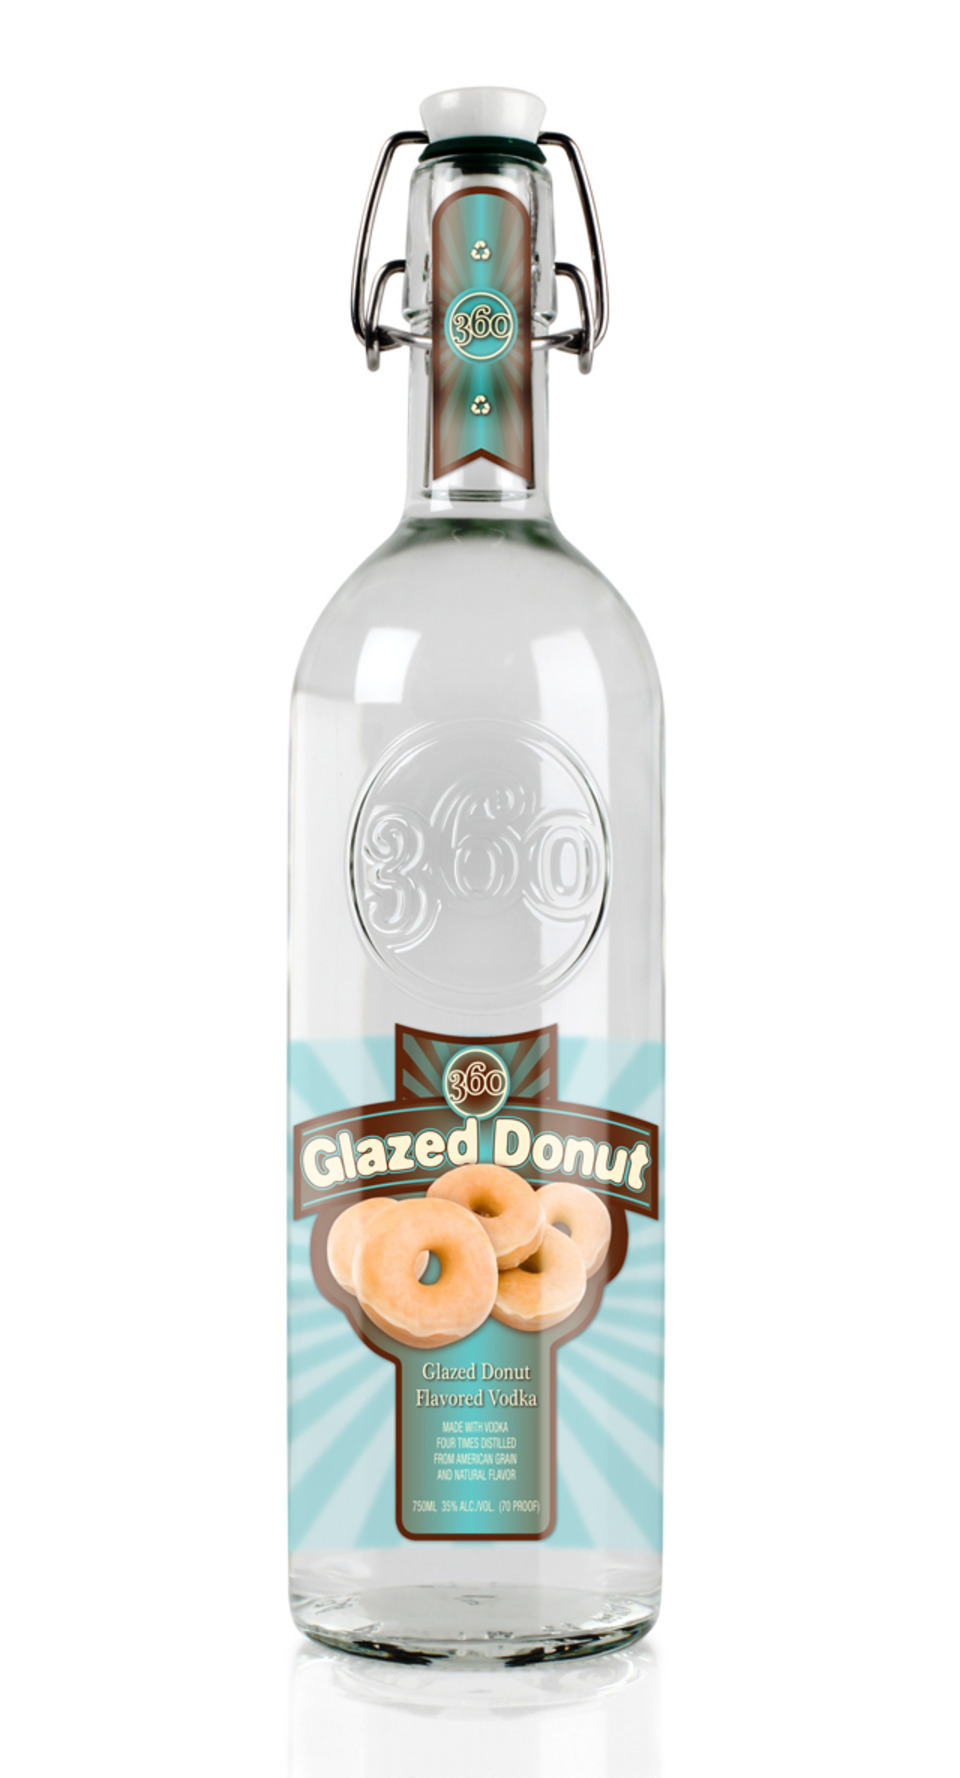 360 glazed donut 750ml20130118 19131 8gto7j 0